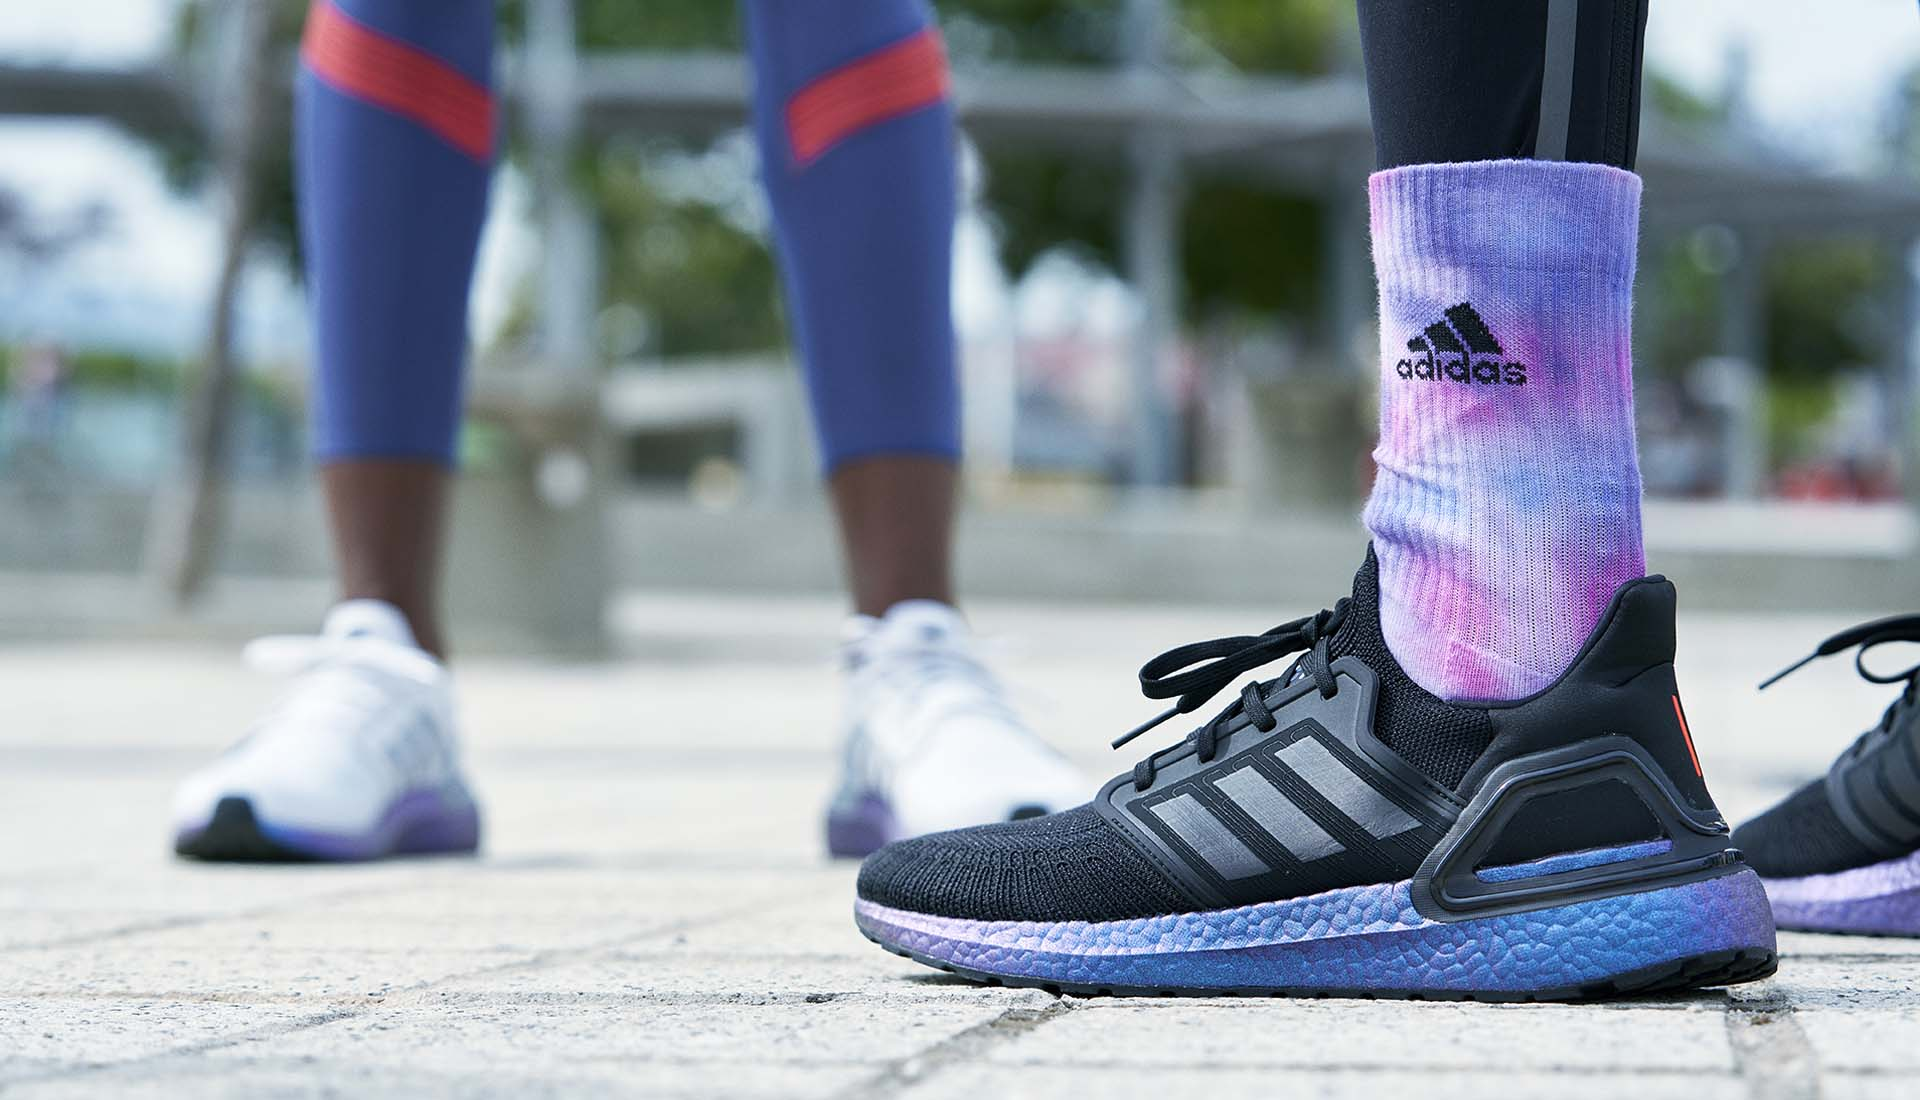 adidas Launch The UltraBoost 20 In Partnership With ISS U.S. ...